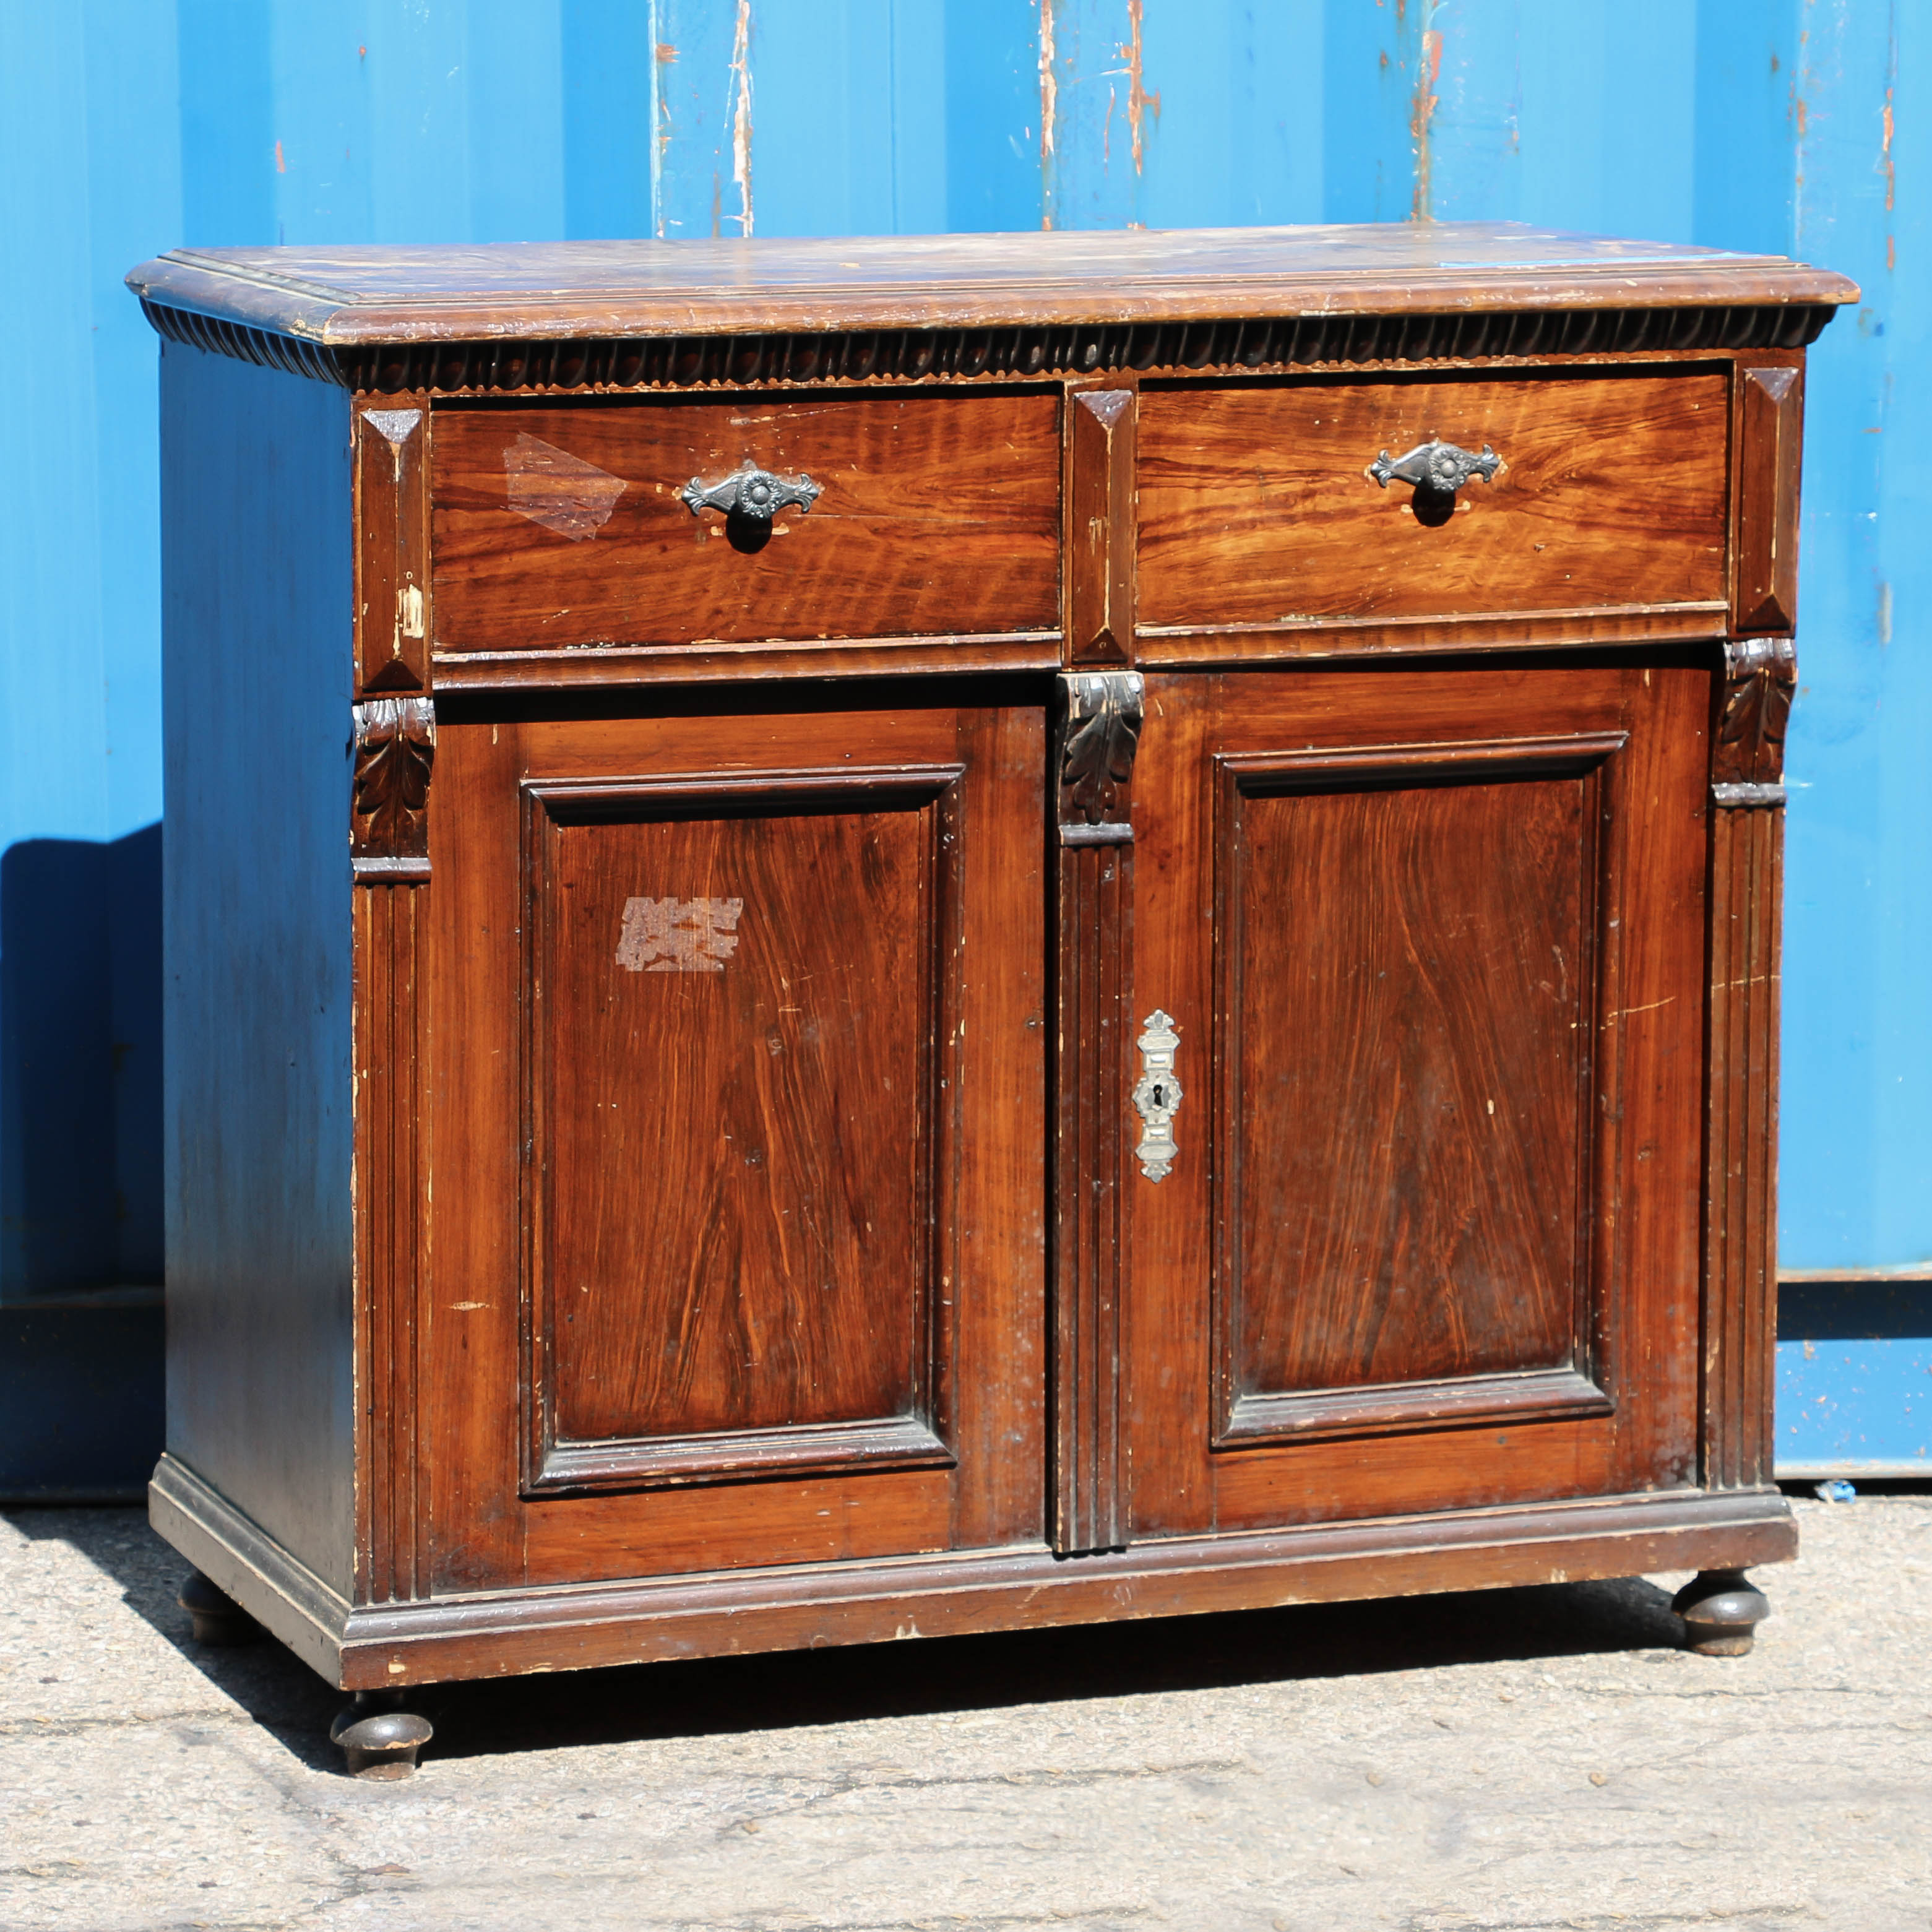 Antique Grain Painted Pine Sideboard Cabinet Return To Cabinets U0026 Cupboards